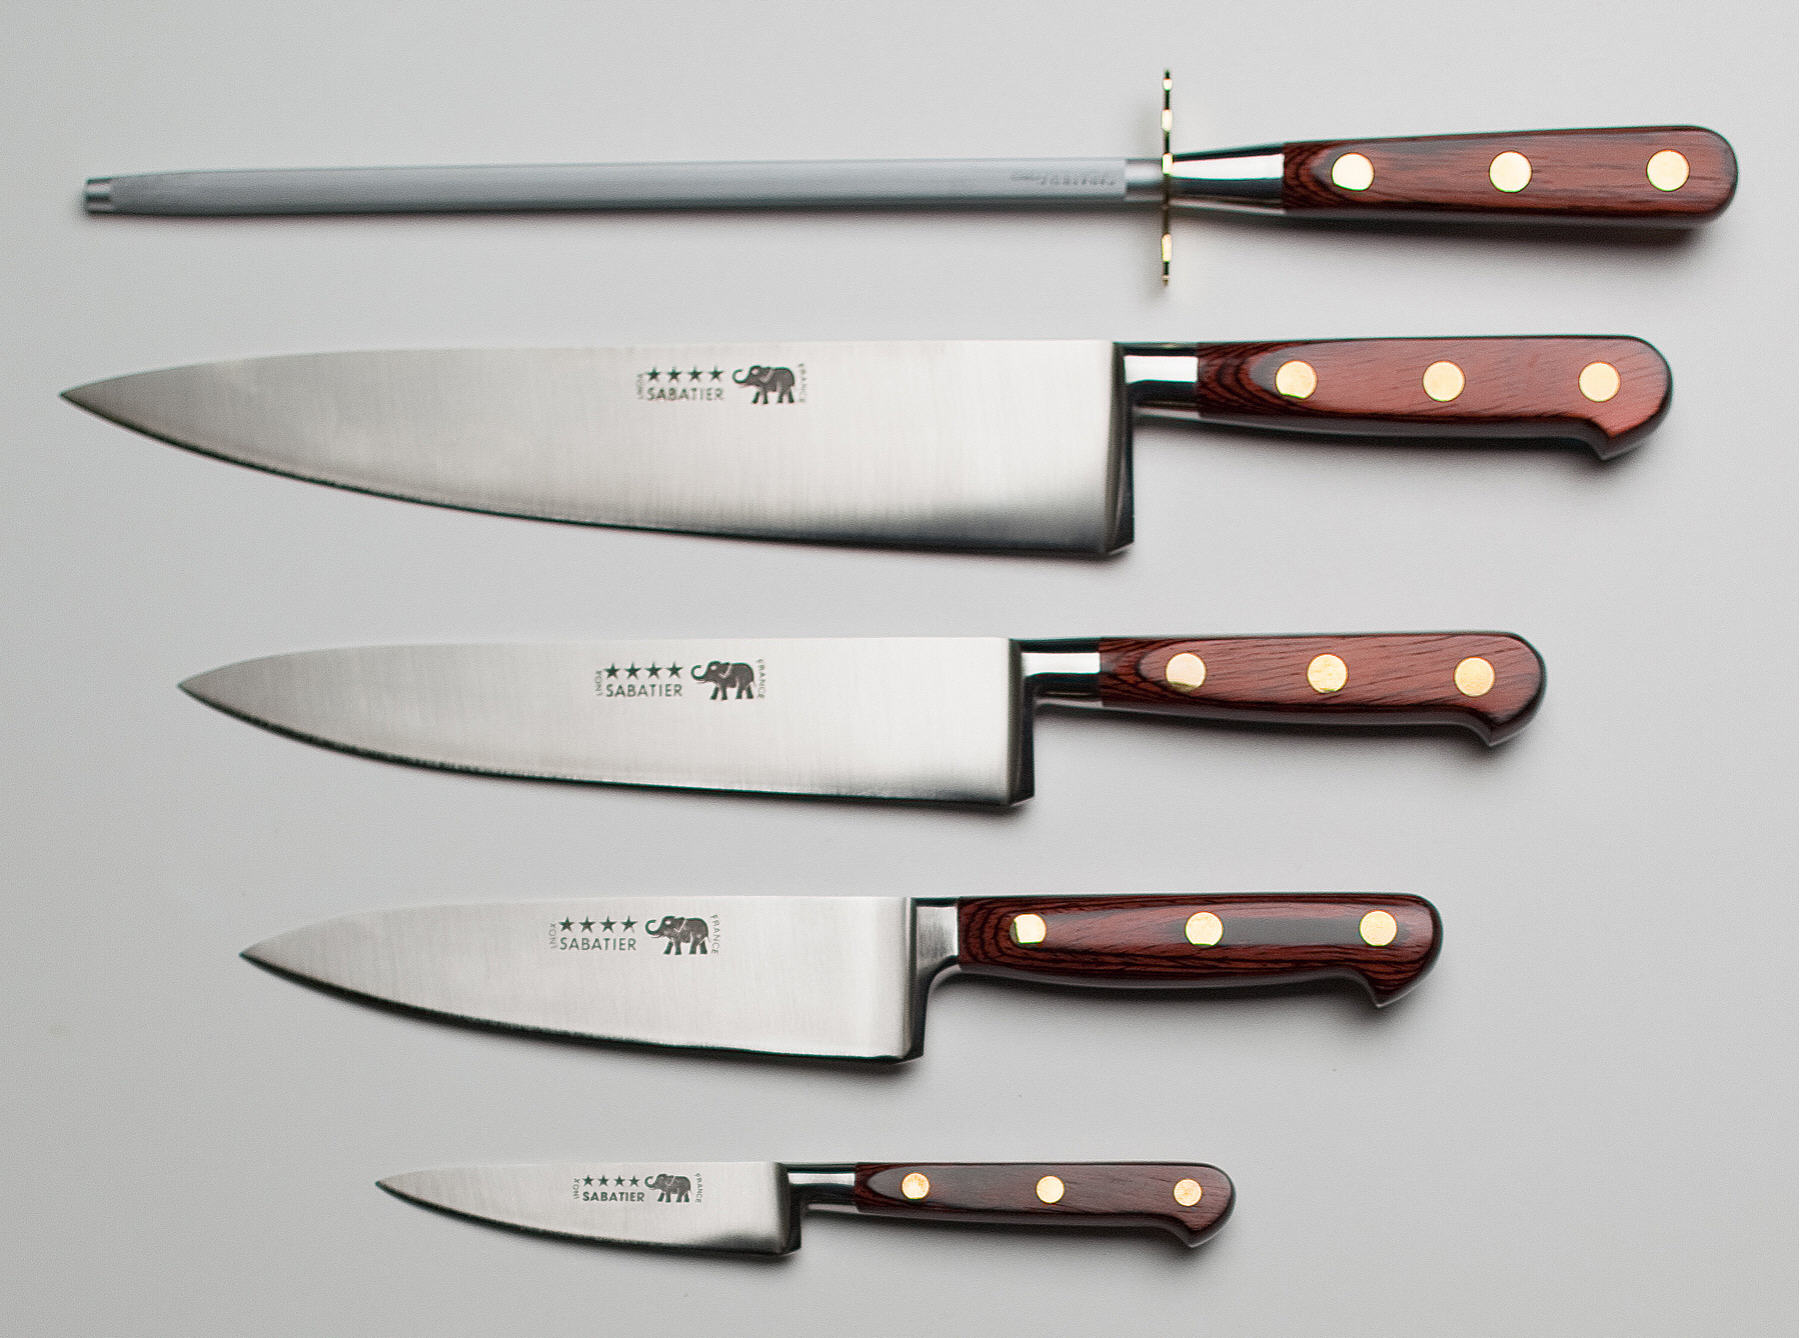 5 pc Chef Knife Set with color choice - Great French Knives